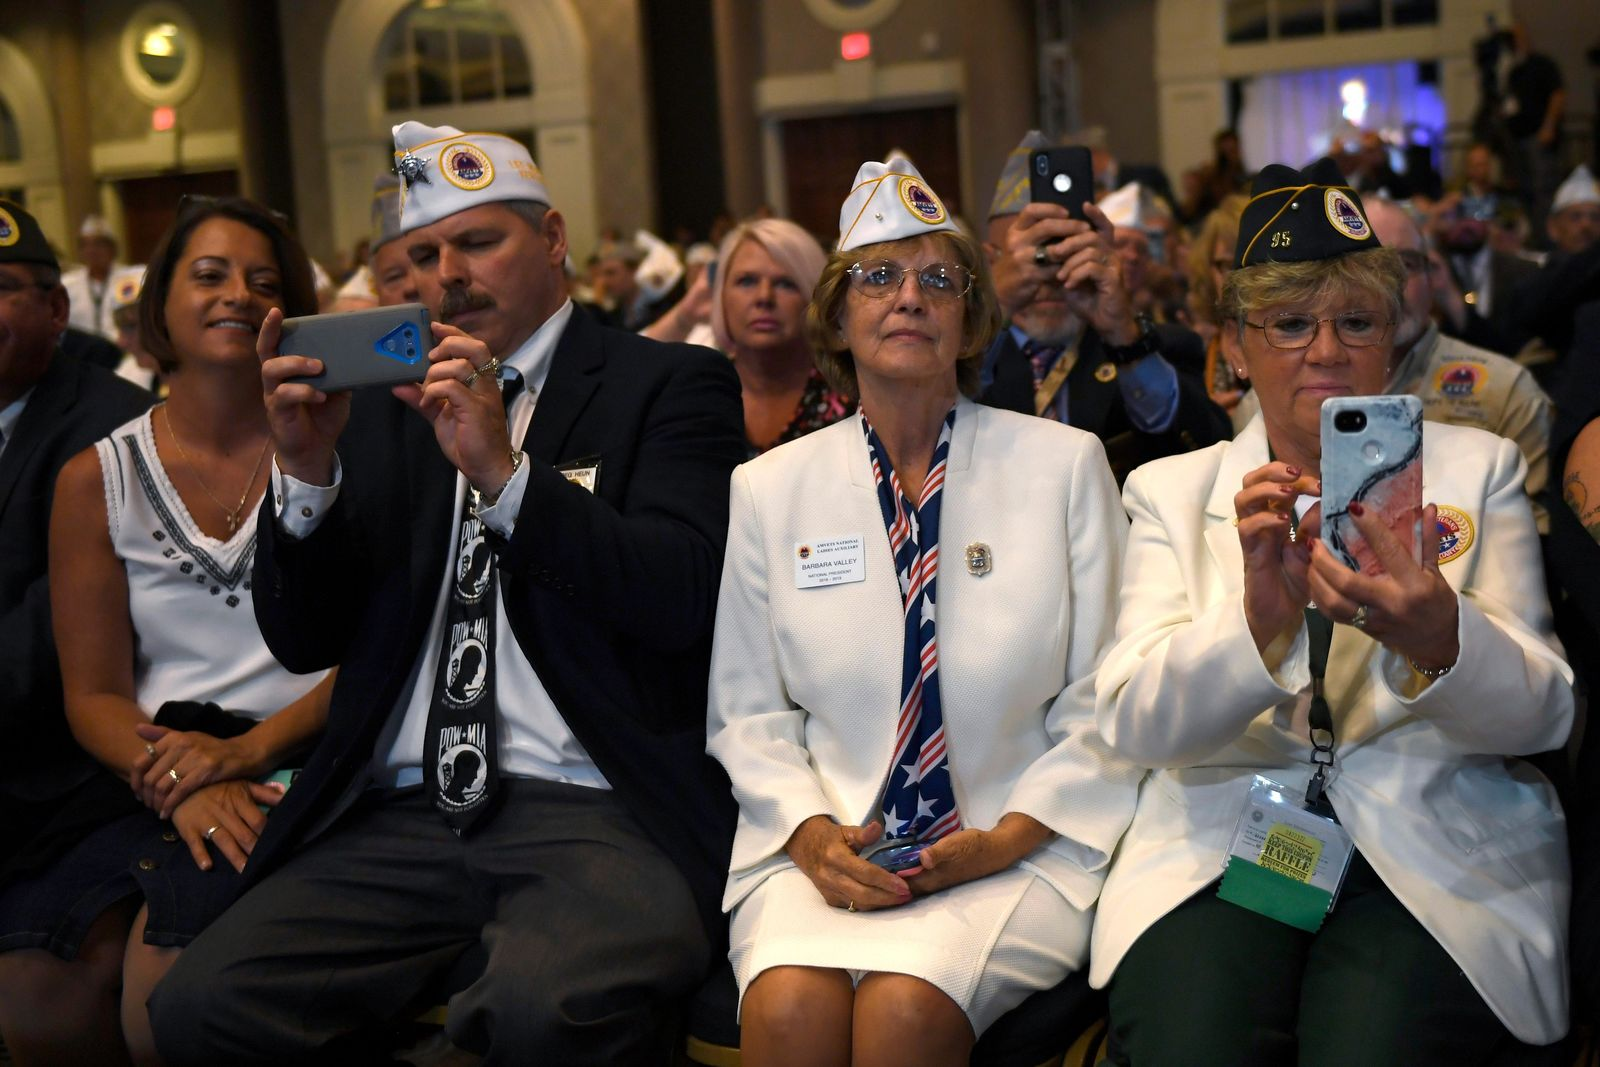 People listen as President Donald Trump speaks at the American Veterans (AMVETS) 75th National Convention in Louisville, Ky., Wednesday, Aug. 21, 2019. (AP Photo/Susan Walsh)